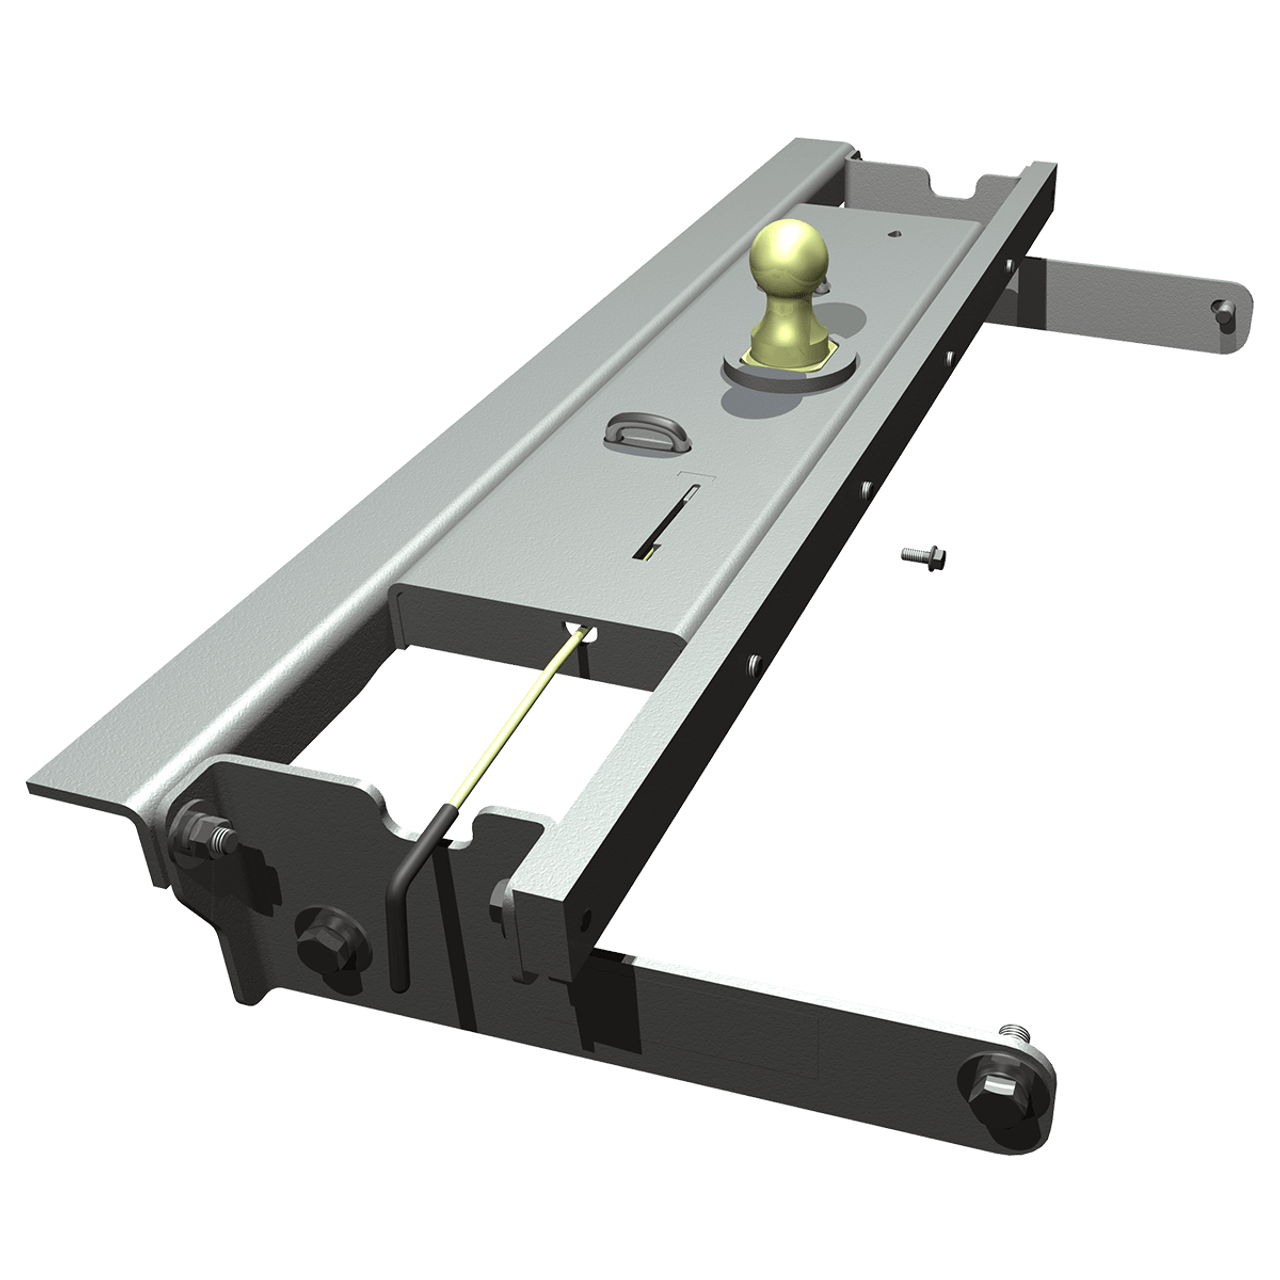 BW1016 --- B&W 30K Underbed Turnover Gooseneck Trailer Hitch - Chevy/GMC